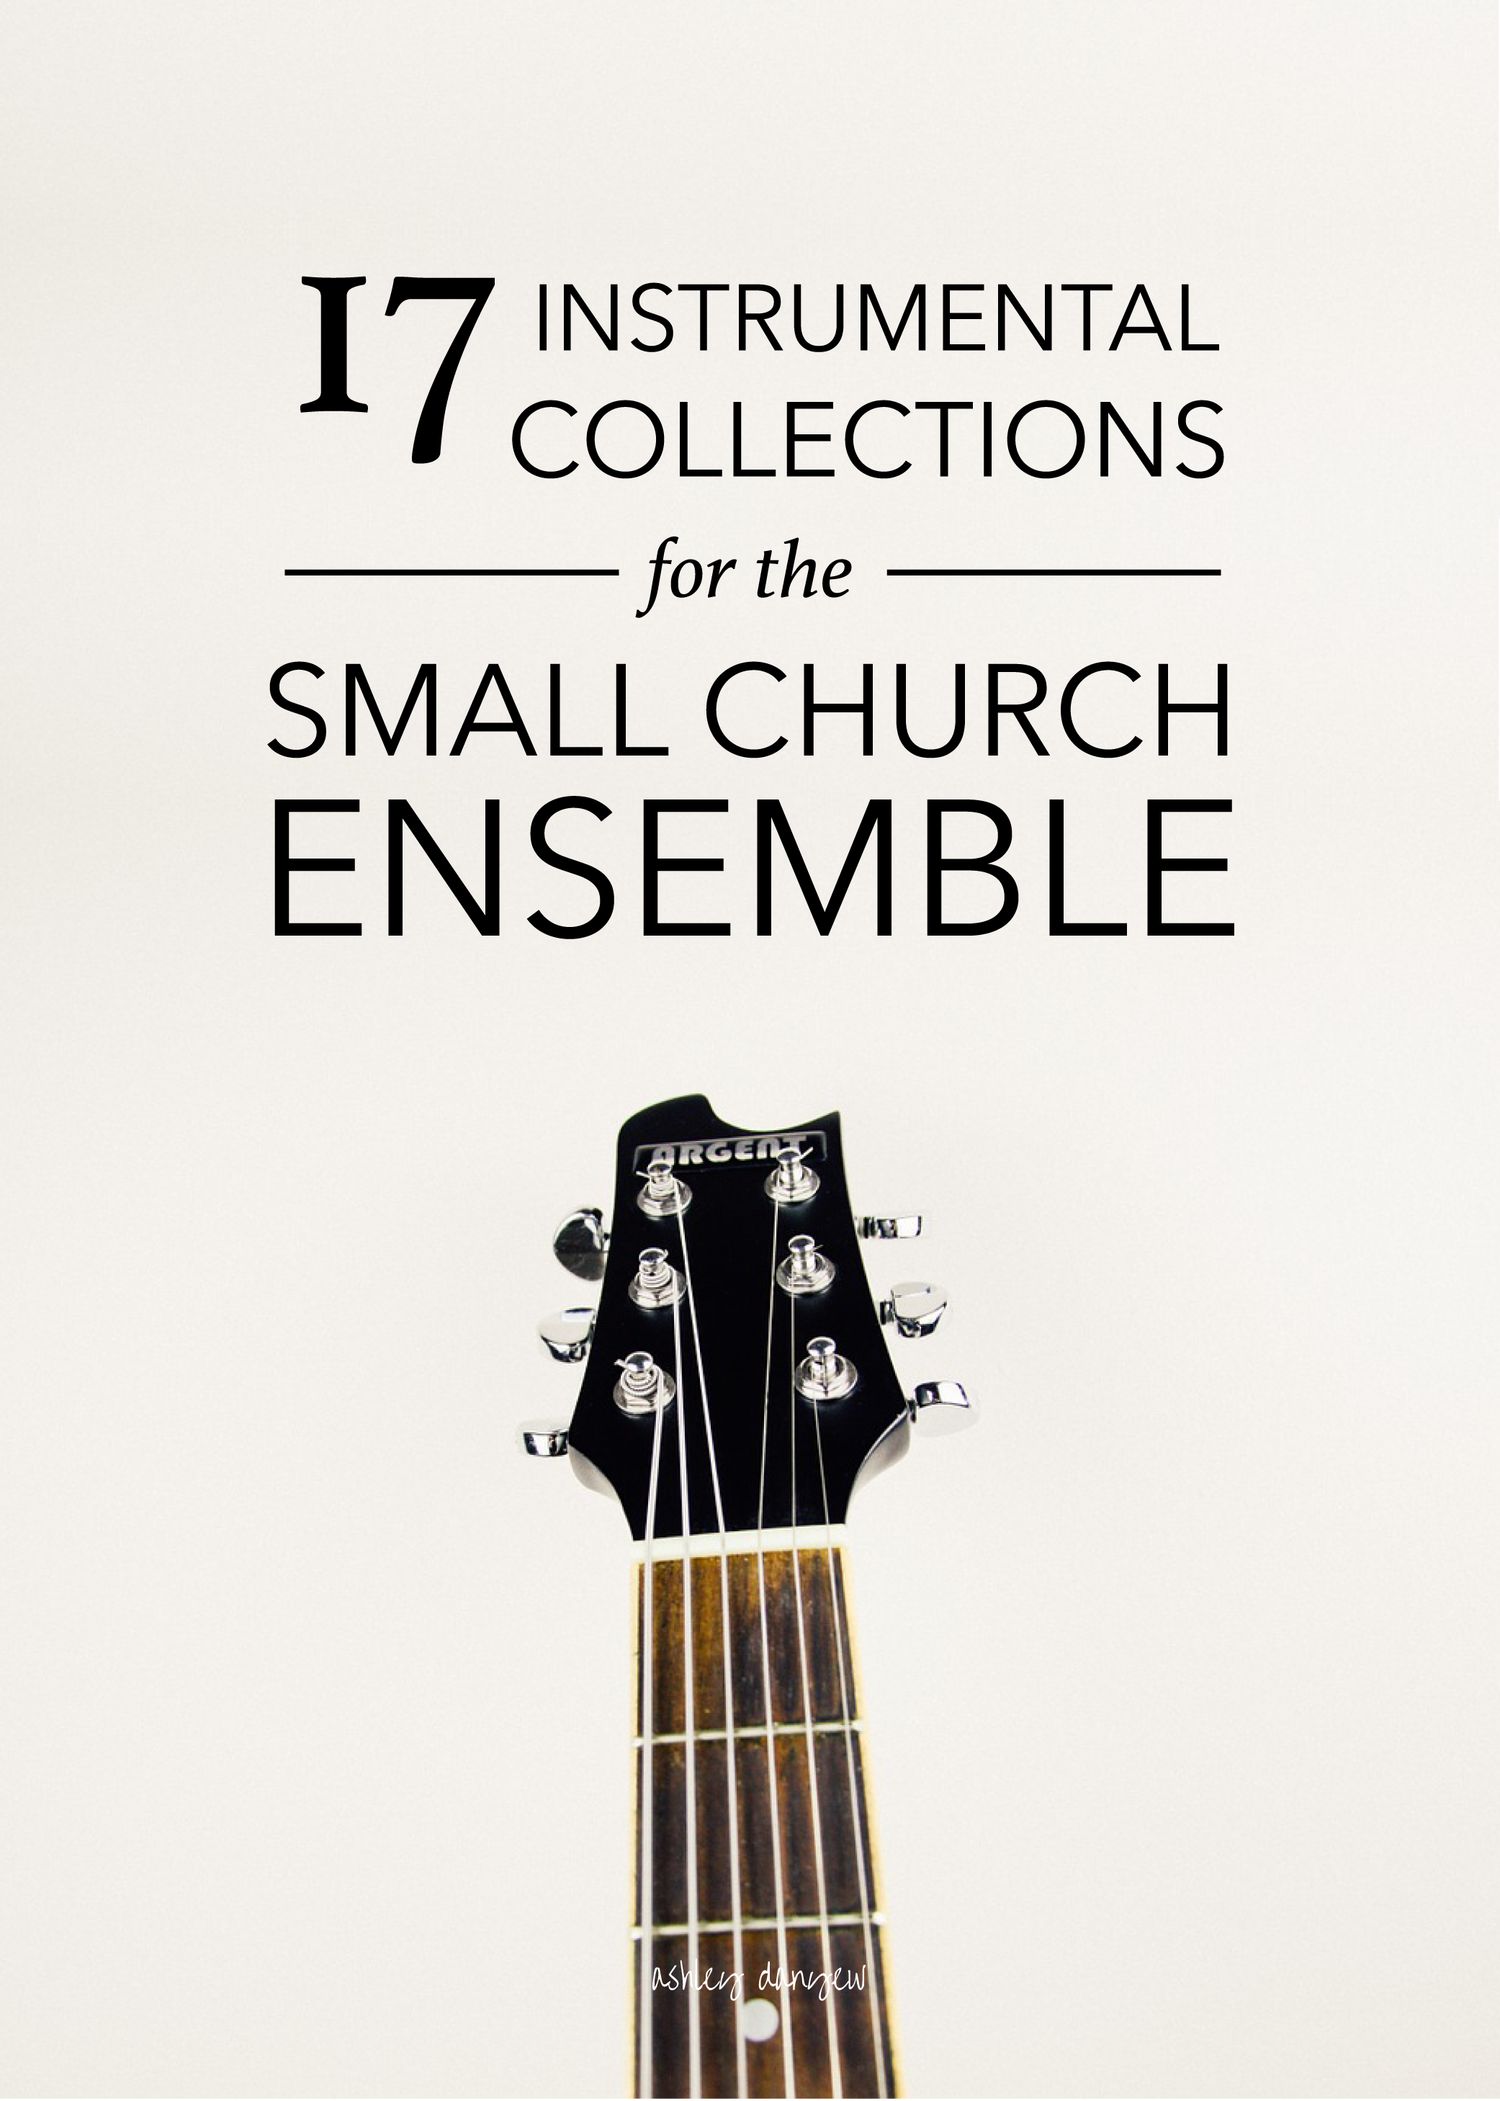 17 Instrumental Collections for the Small Church Ensemble